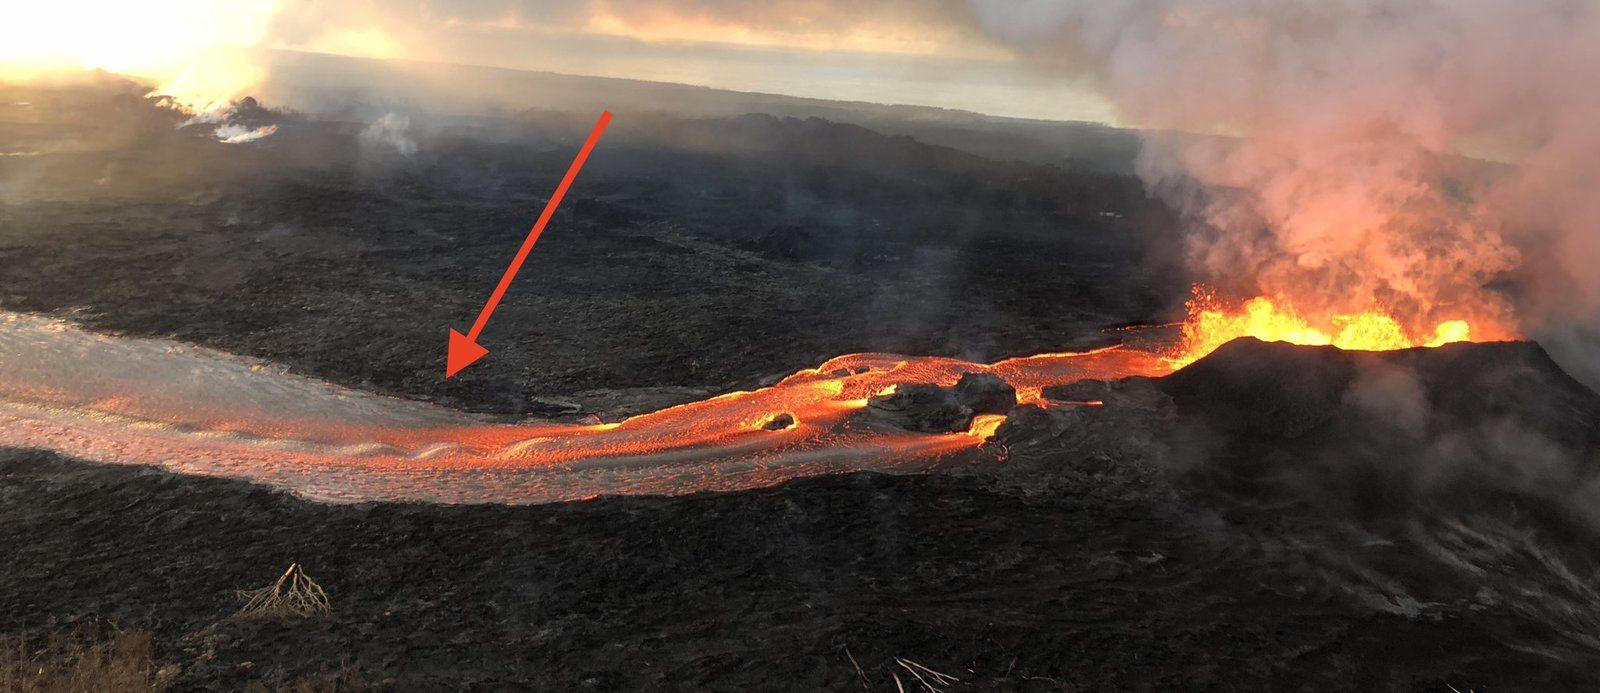 Kilauea East rift zone - Standing waves form in the lava flow near the vent (red arrow) - USGS photo 14.06.2018